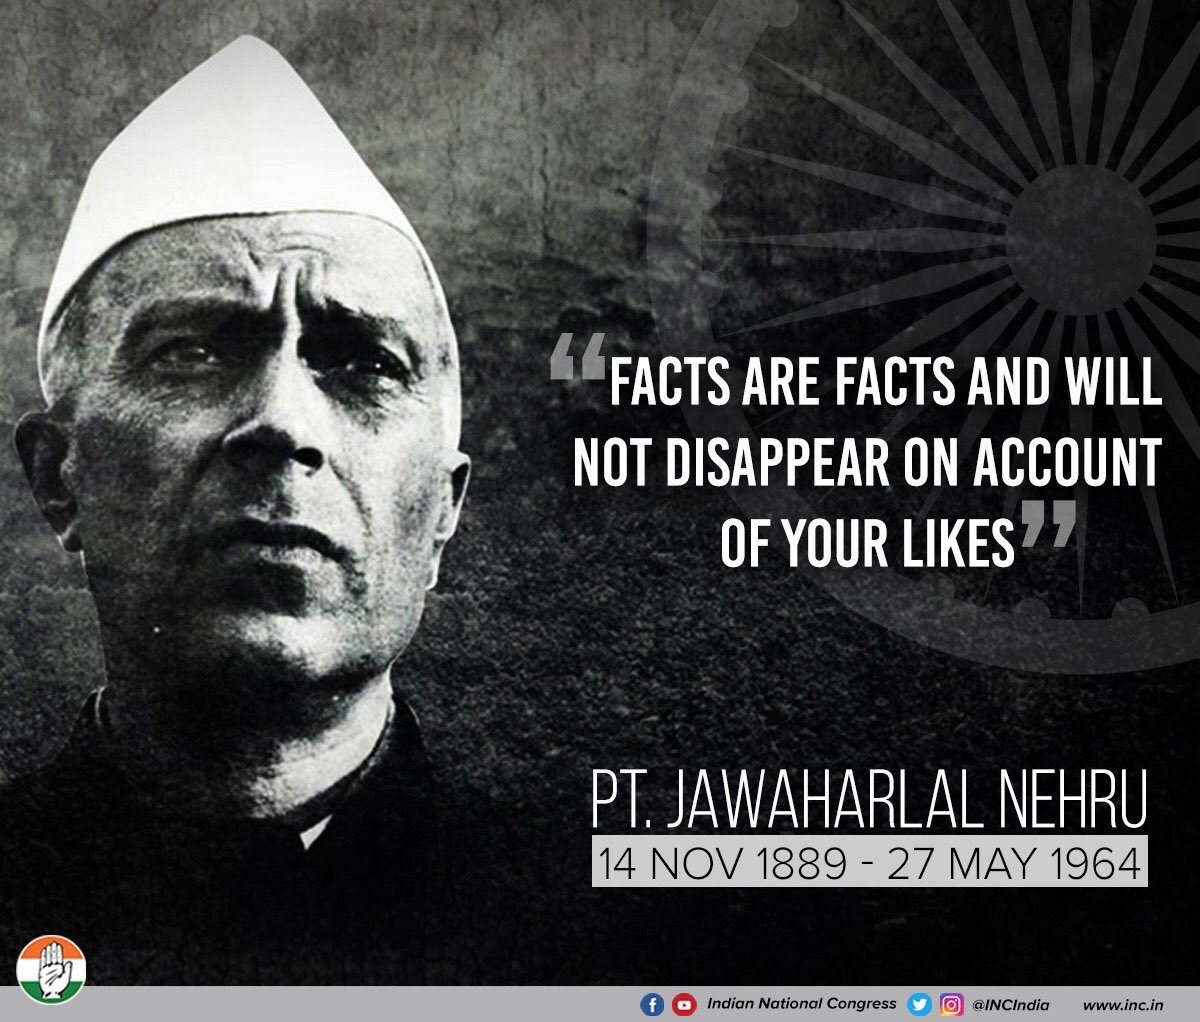 On the birth anniversary of Pt. Jawaharlal Nehru, the best way for us to honour him, is by rededicating ourselves to Freedom, Democracy, Secularism & Socialism. These were the core values he believed in and fought for. These are the core values that bind our nation together.